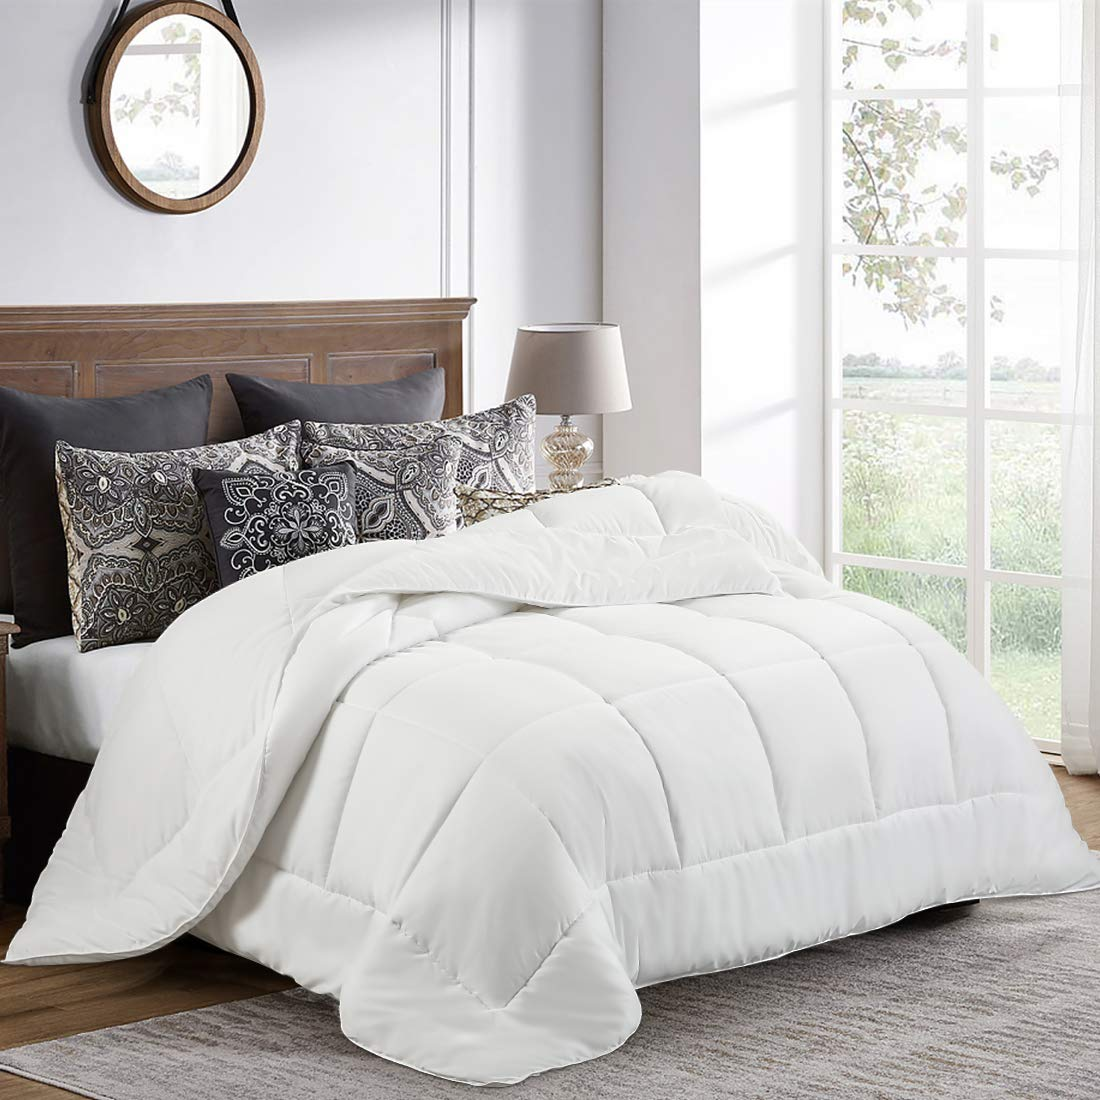 Balichun Comforter King (90 by 102 inches) - White Down Alternative Comforters Soft Quilted Duvet Insert with Corner Tabs Luxury Hotel Collection 1800 Series - All Season